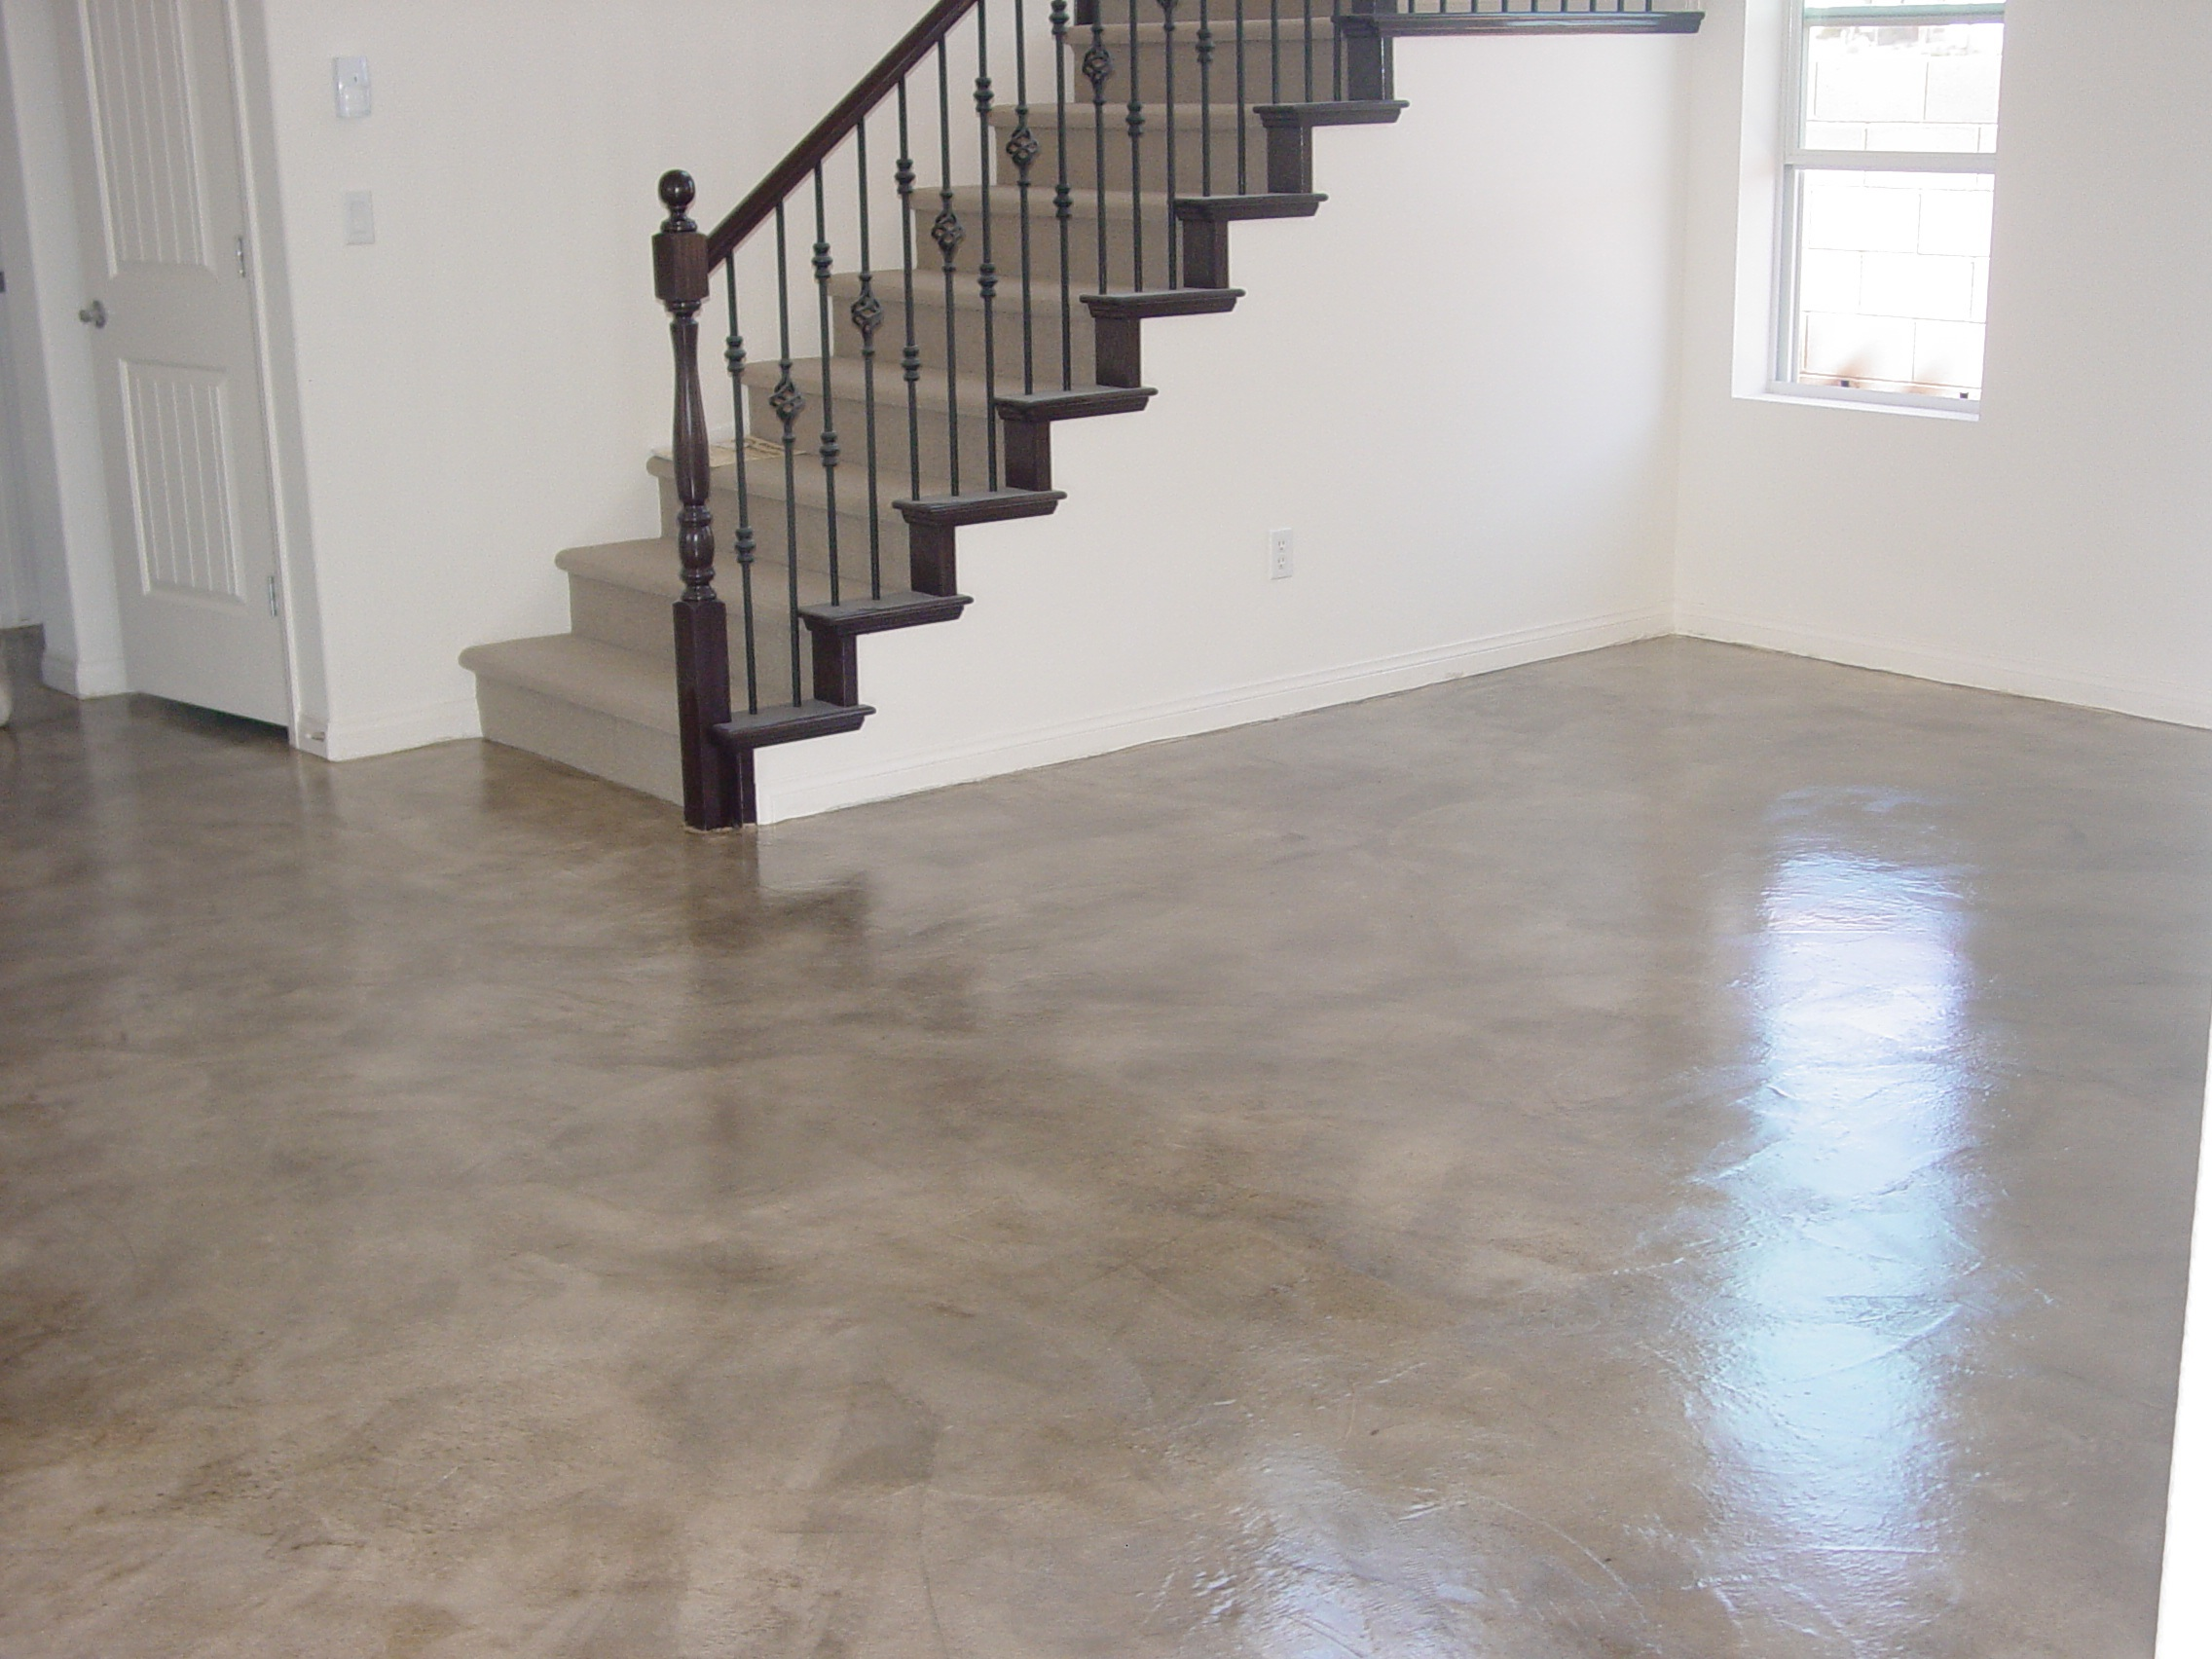 Interior residential concrete floors concrete for How to shine cement floor